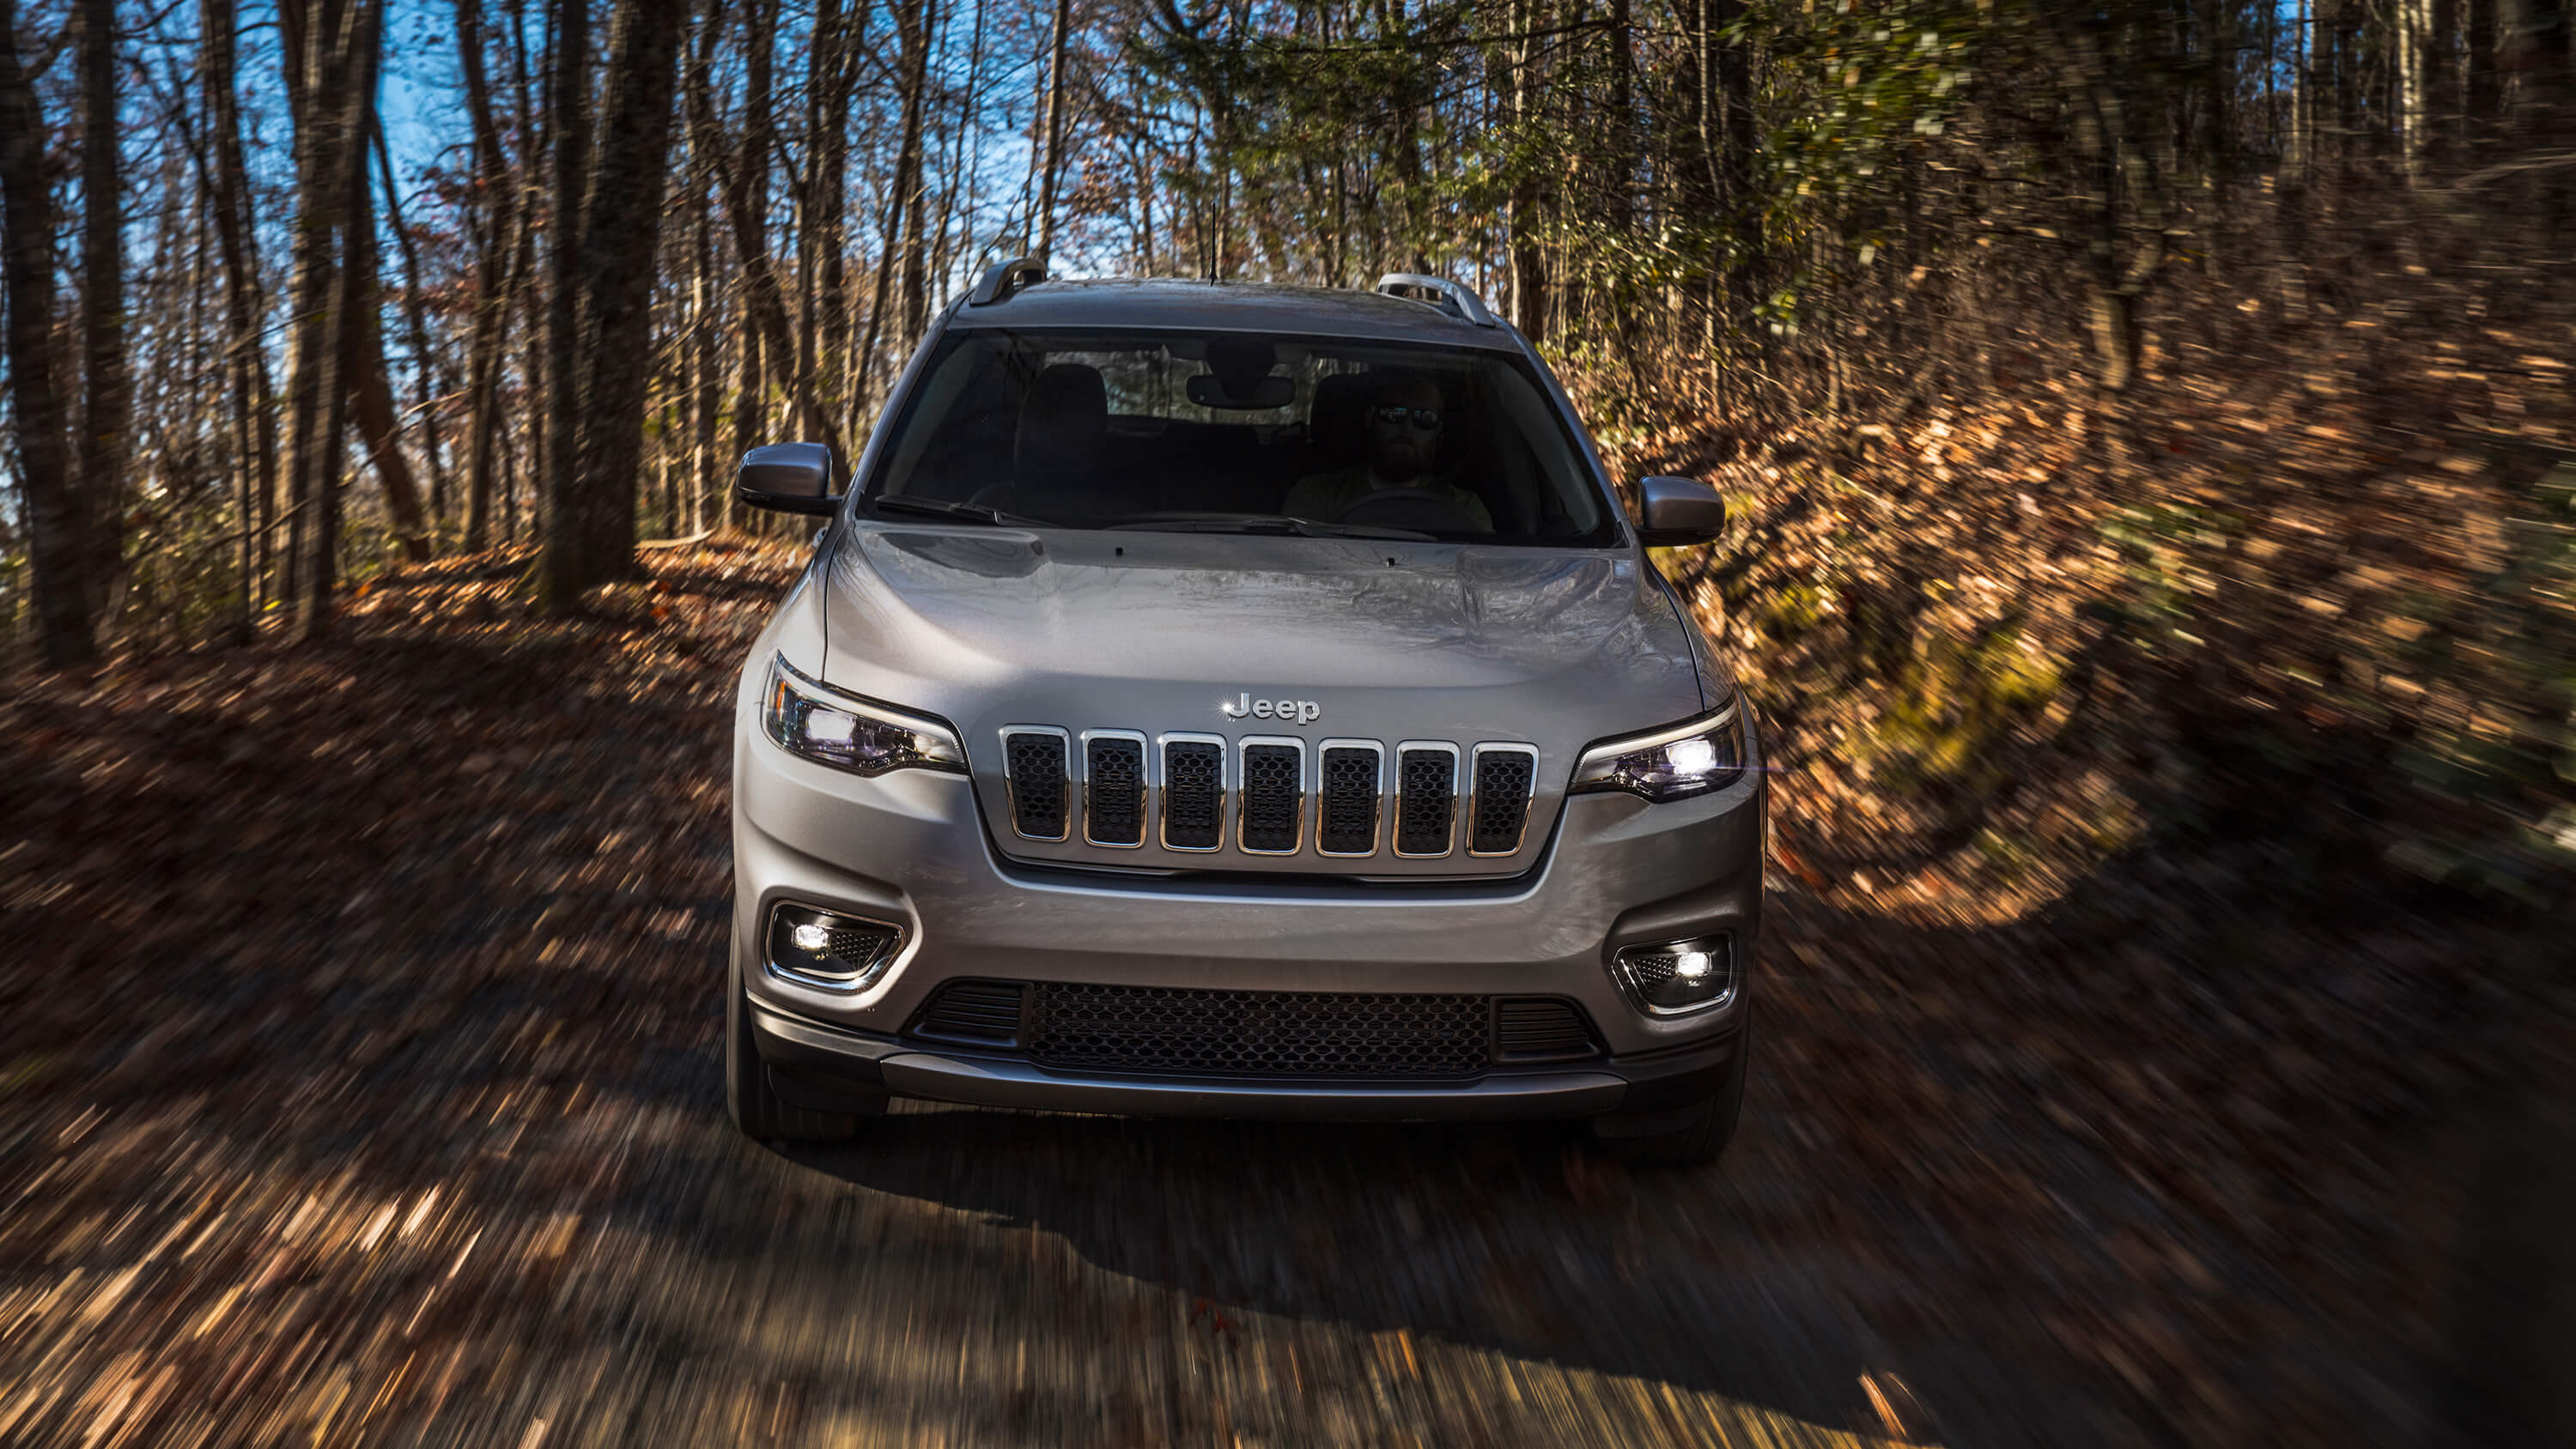 jeep cherokee off road hd wallpaper 65158